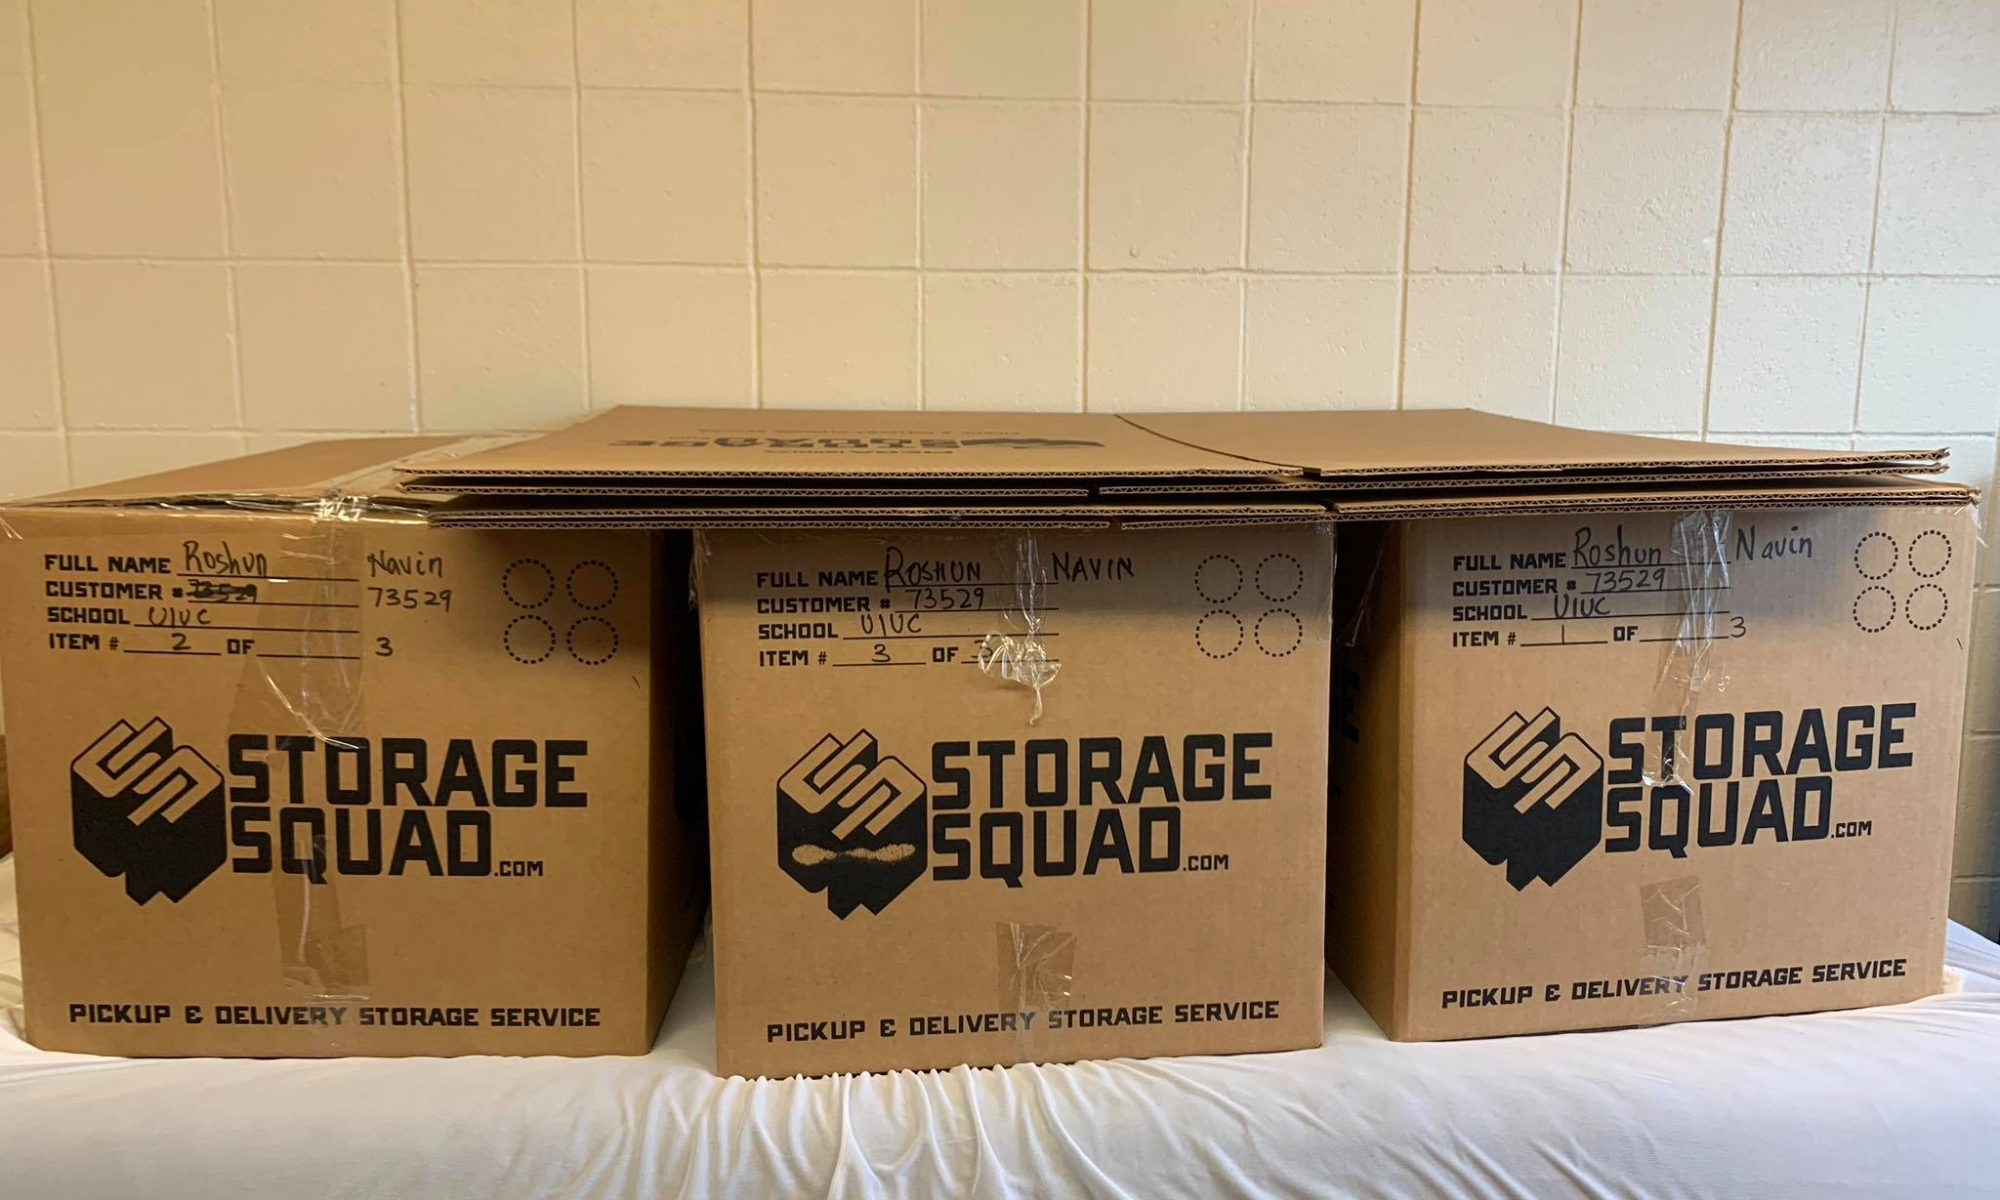 Storage Squad Boxes